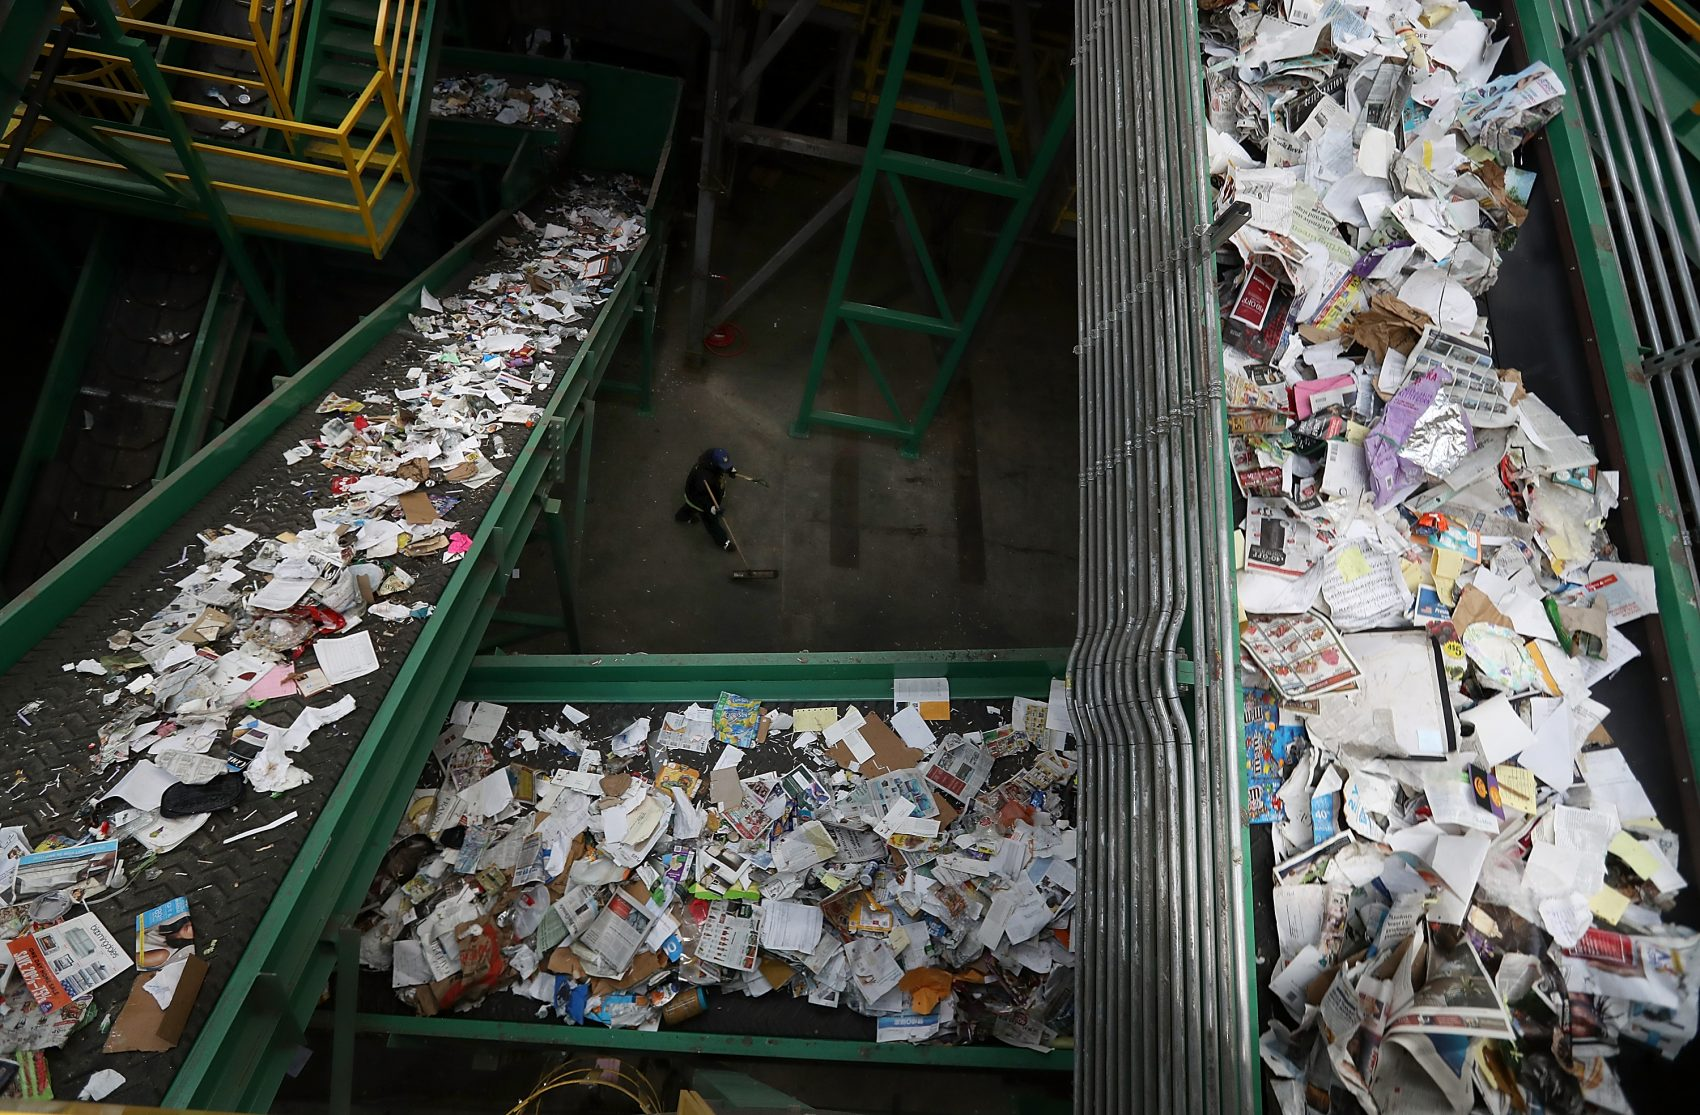 Conveyor belts carry recyclable materials through a sorting machine at Recology's Recycle Central in San Francisco. (Justin Sullivan/Getty Images)